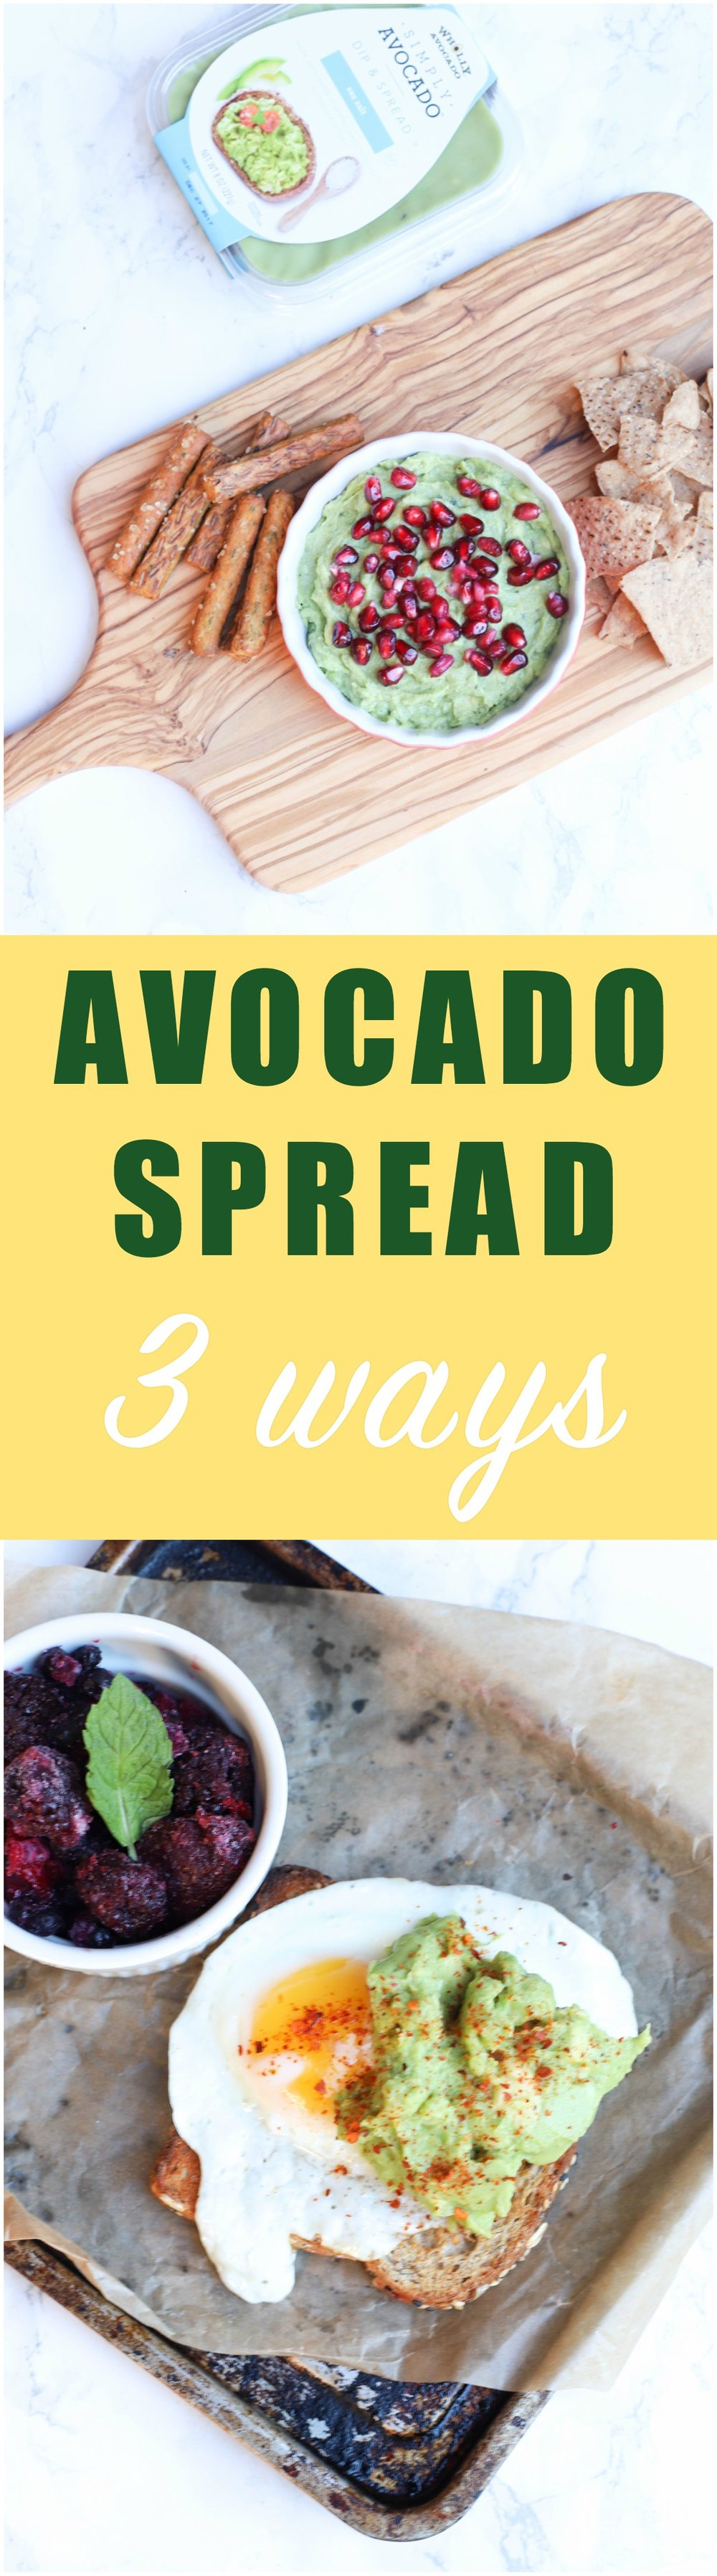 Enjoy Avocado Spread 3 Ways for parties, snacks, and utilizing leftover.